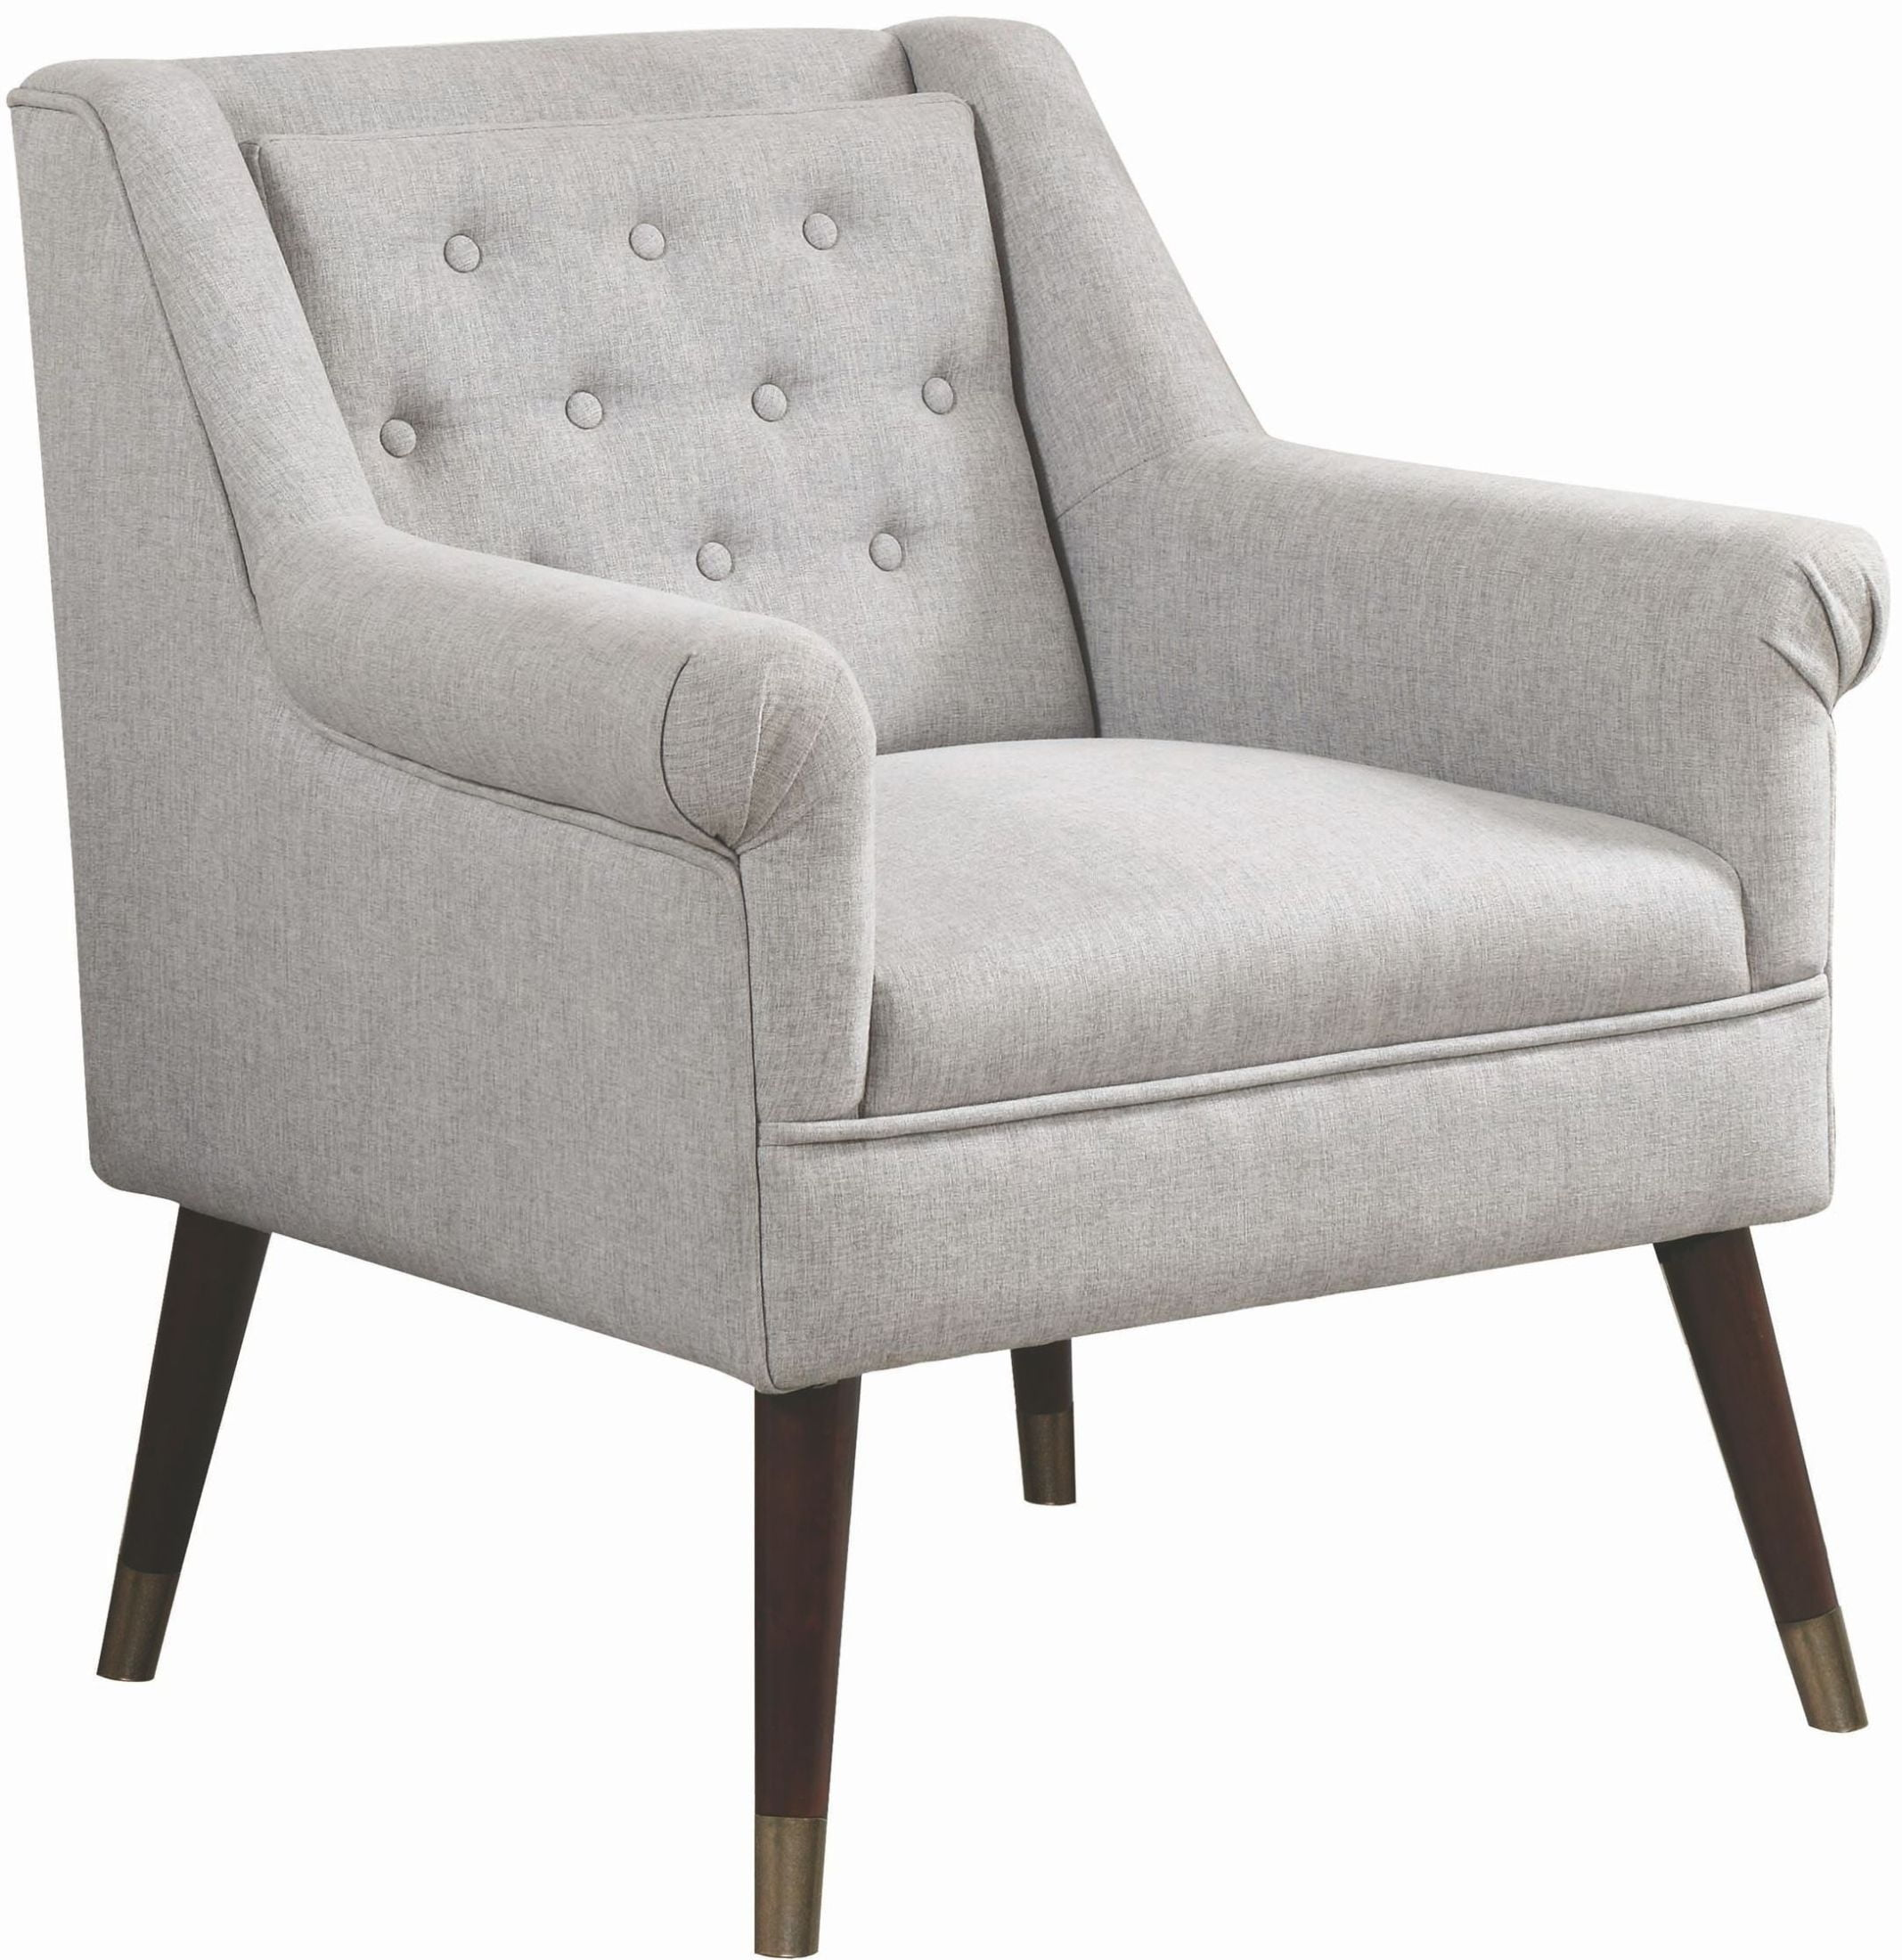 Light Grey Accent Chair: Coaster 903857 Light Gray Accent Chair